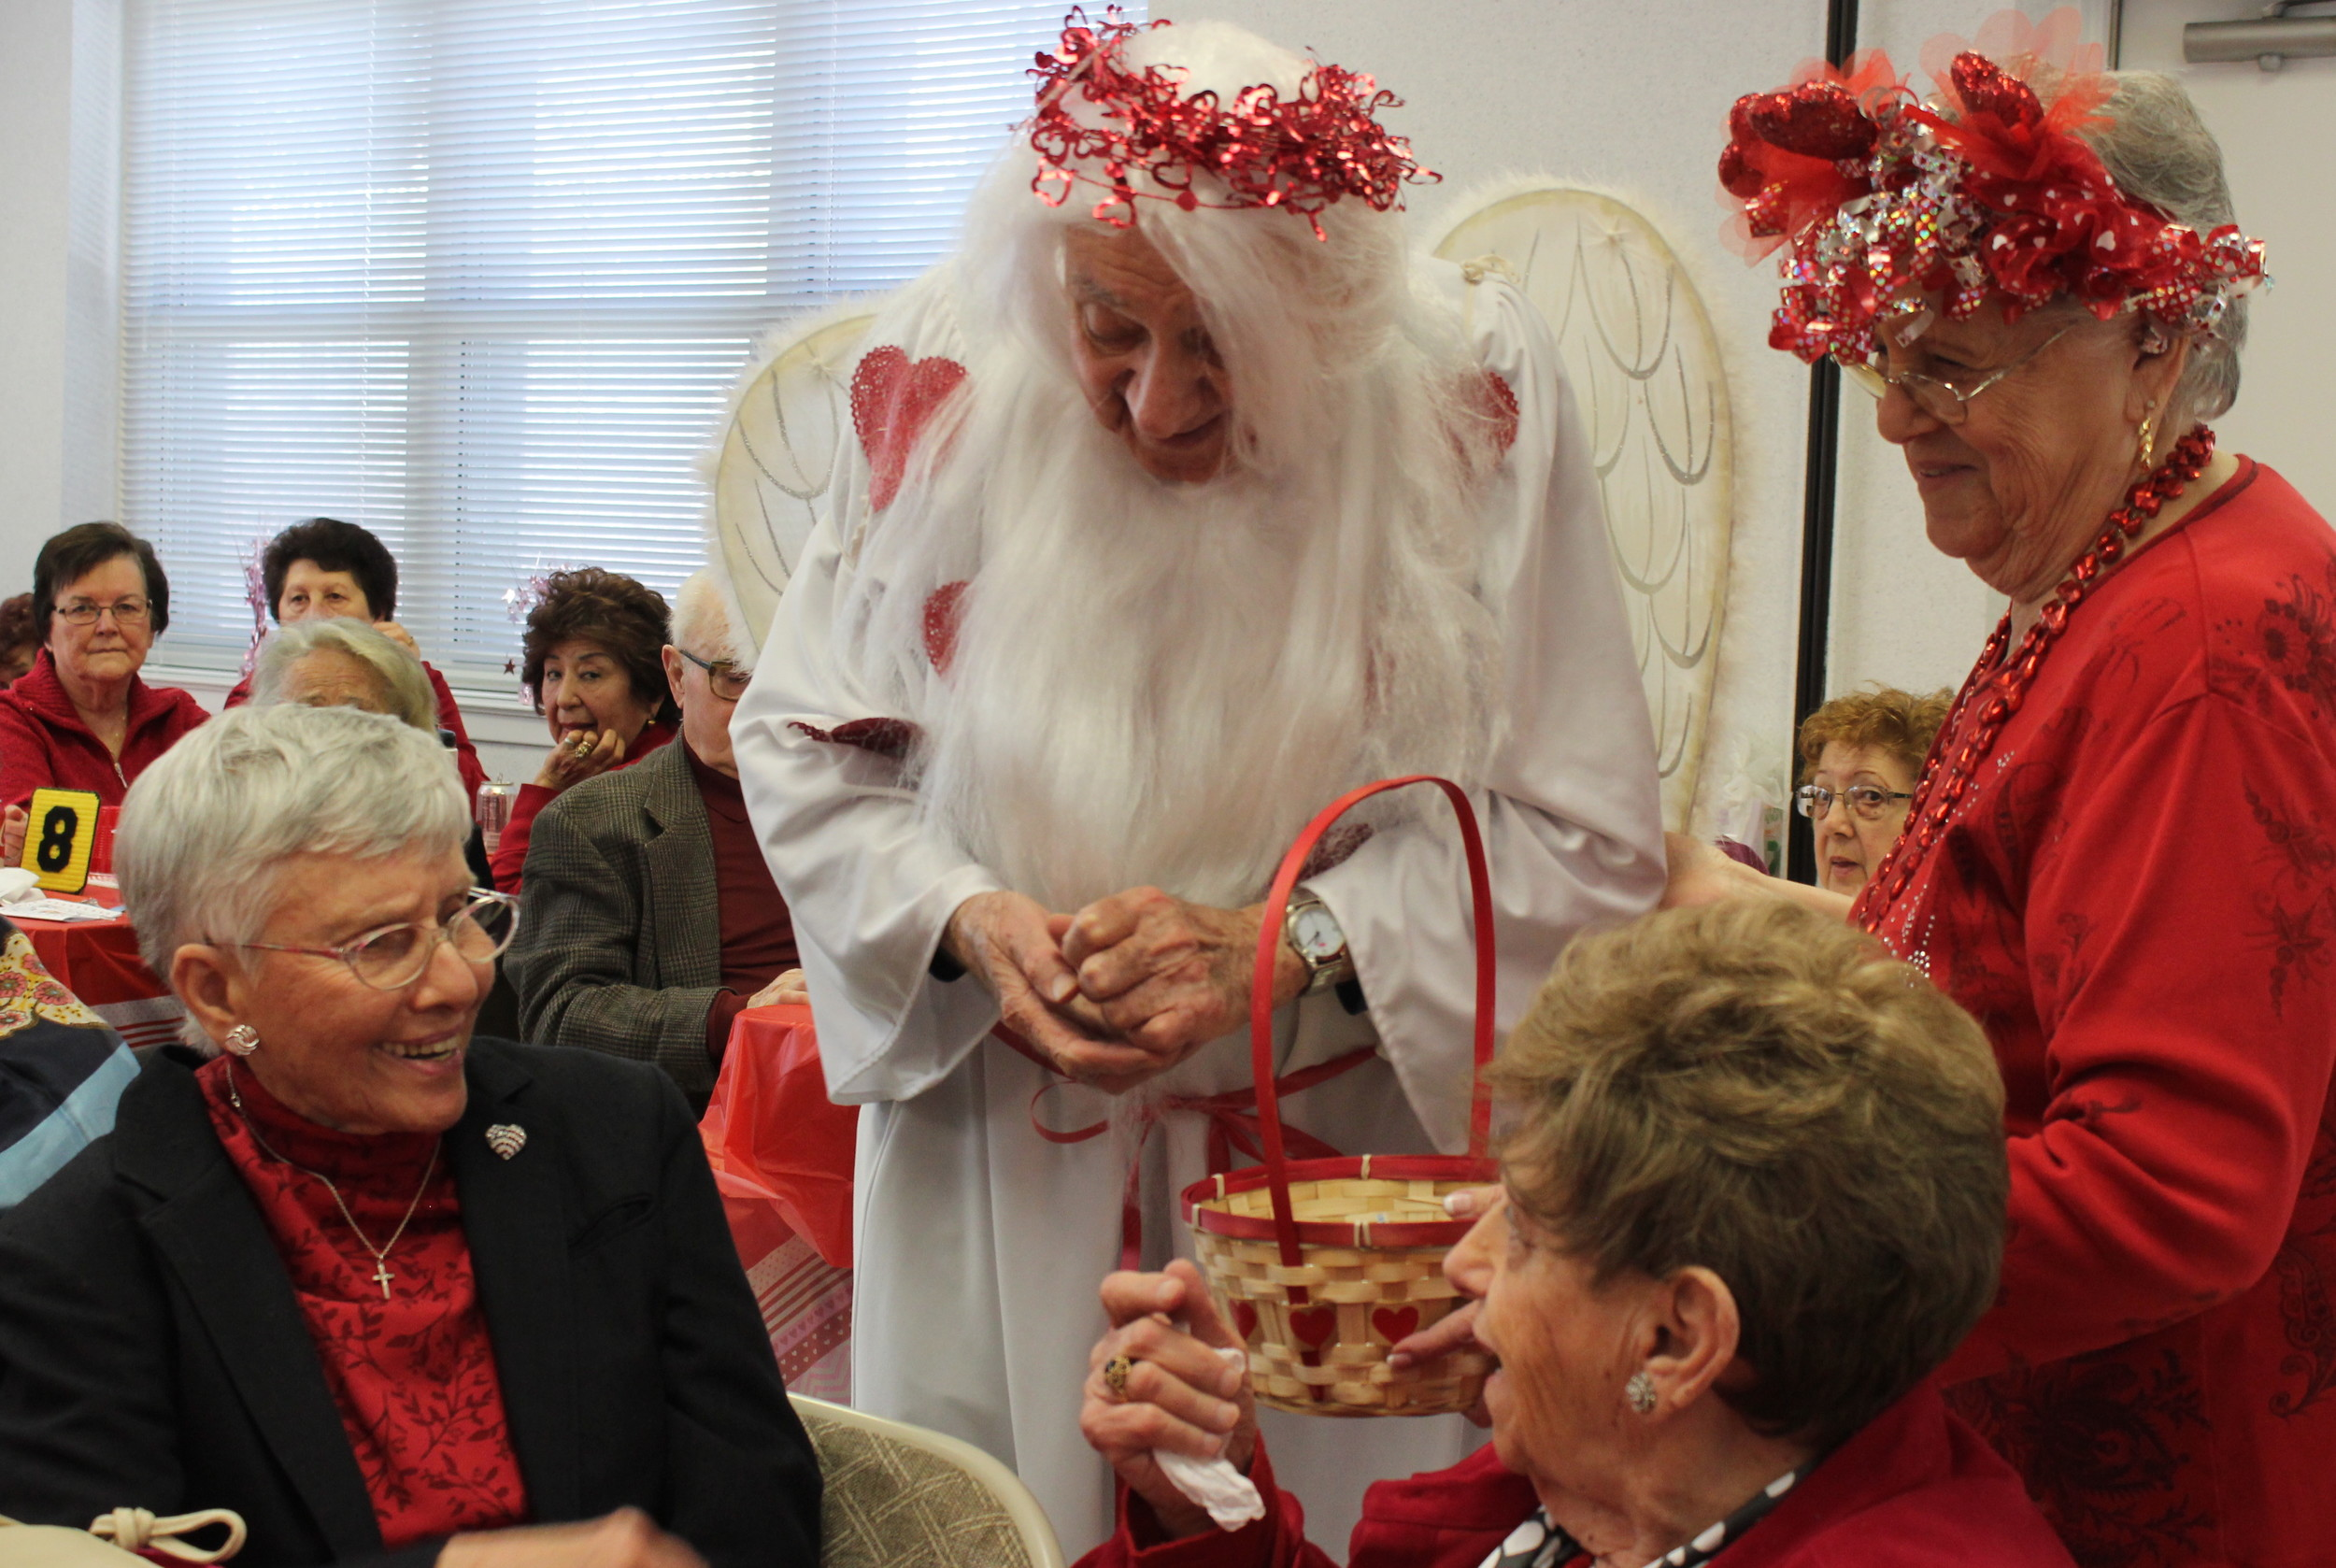 Charlie Franza, 94, handed out Hershey's Kisses to Salisbury Senior Center members with help from East Meadow Senior Center President Phyllis Caggiano during the annual Kissing Angels event.